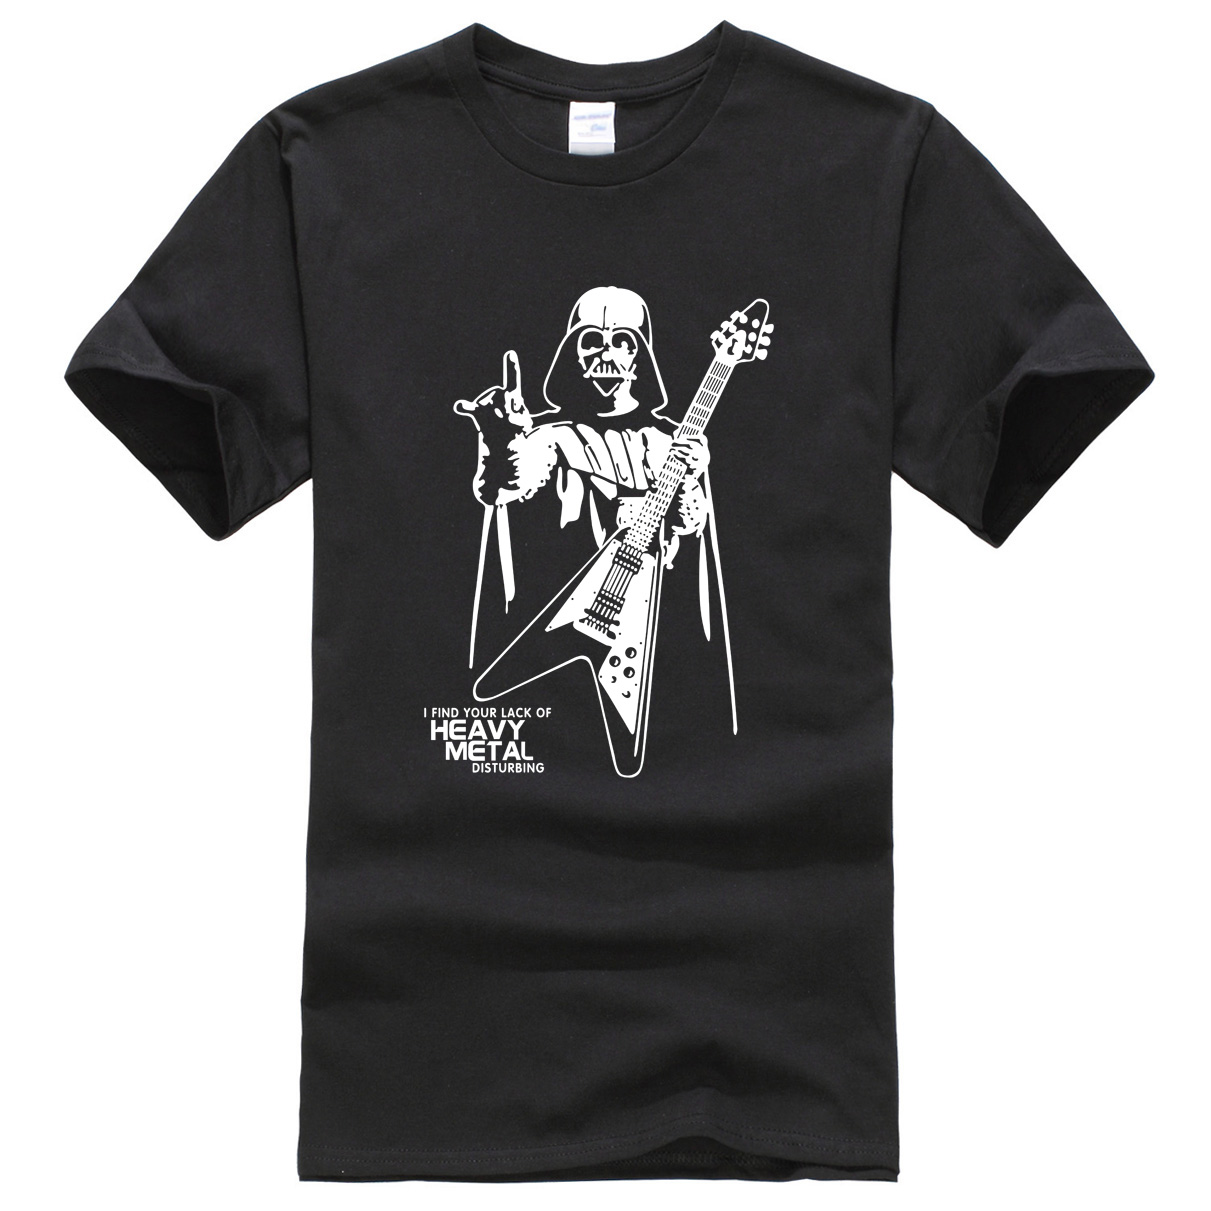 T-shirts summer Darth Vader short sleeve mens T-shirt Heavy Metal funny pattern brand-clothing crossfit t shirt men tops tees